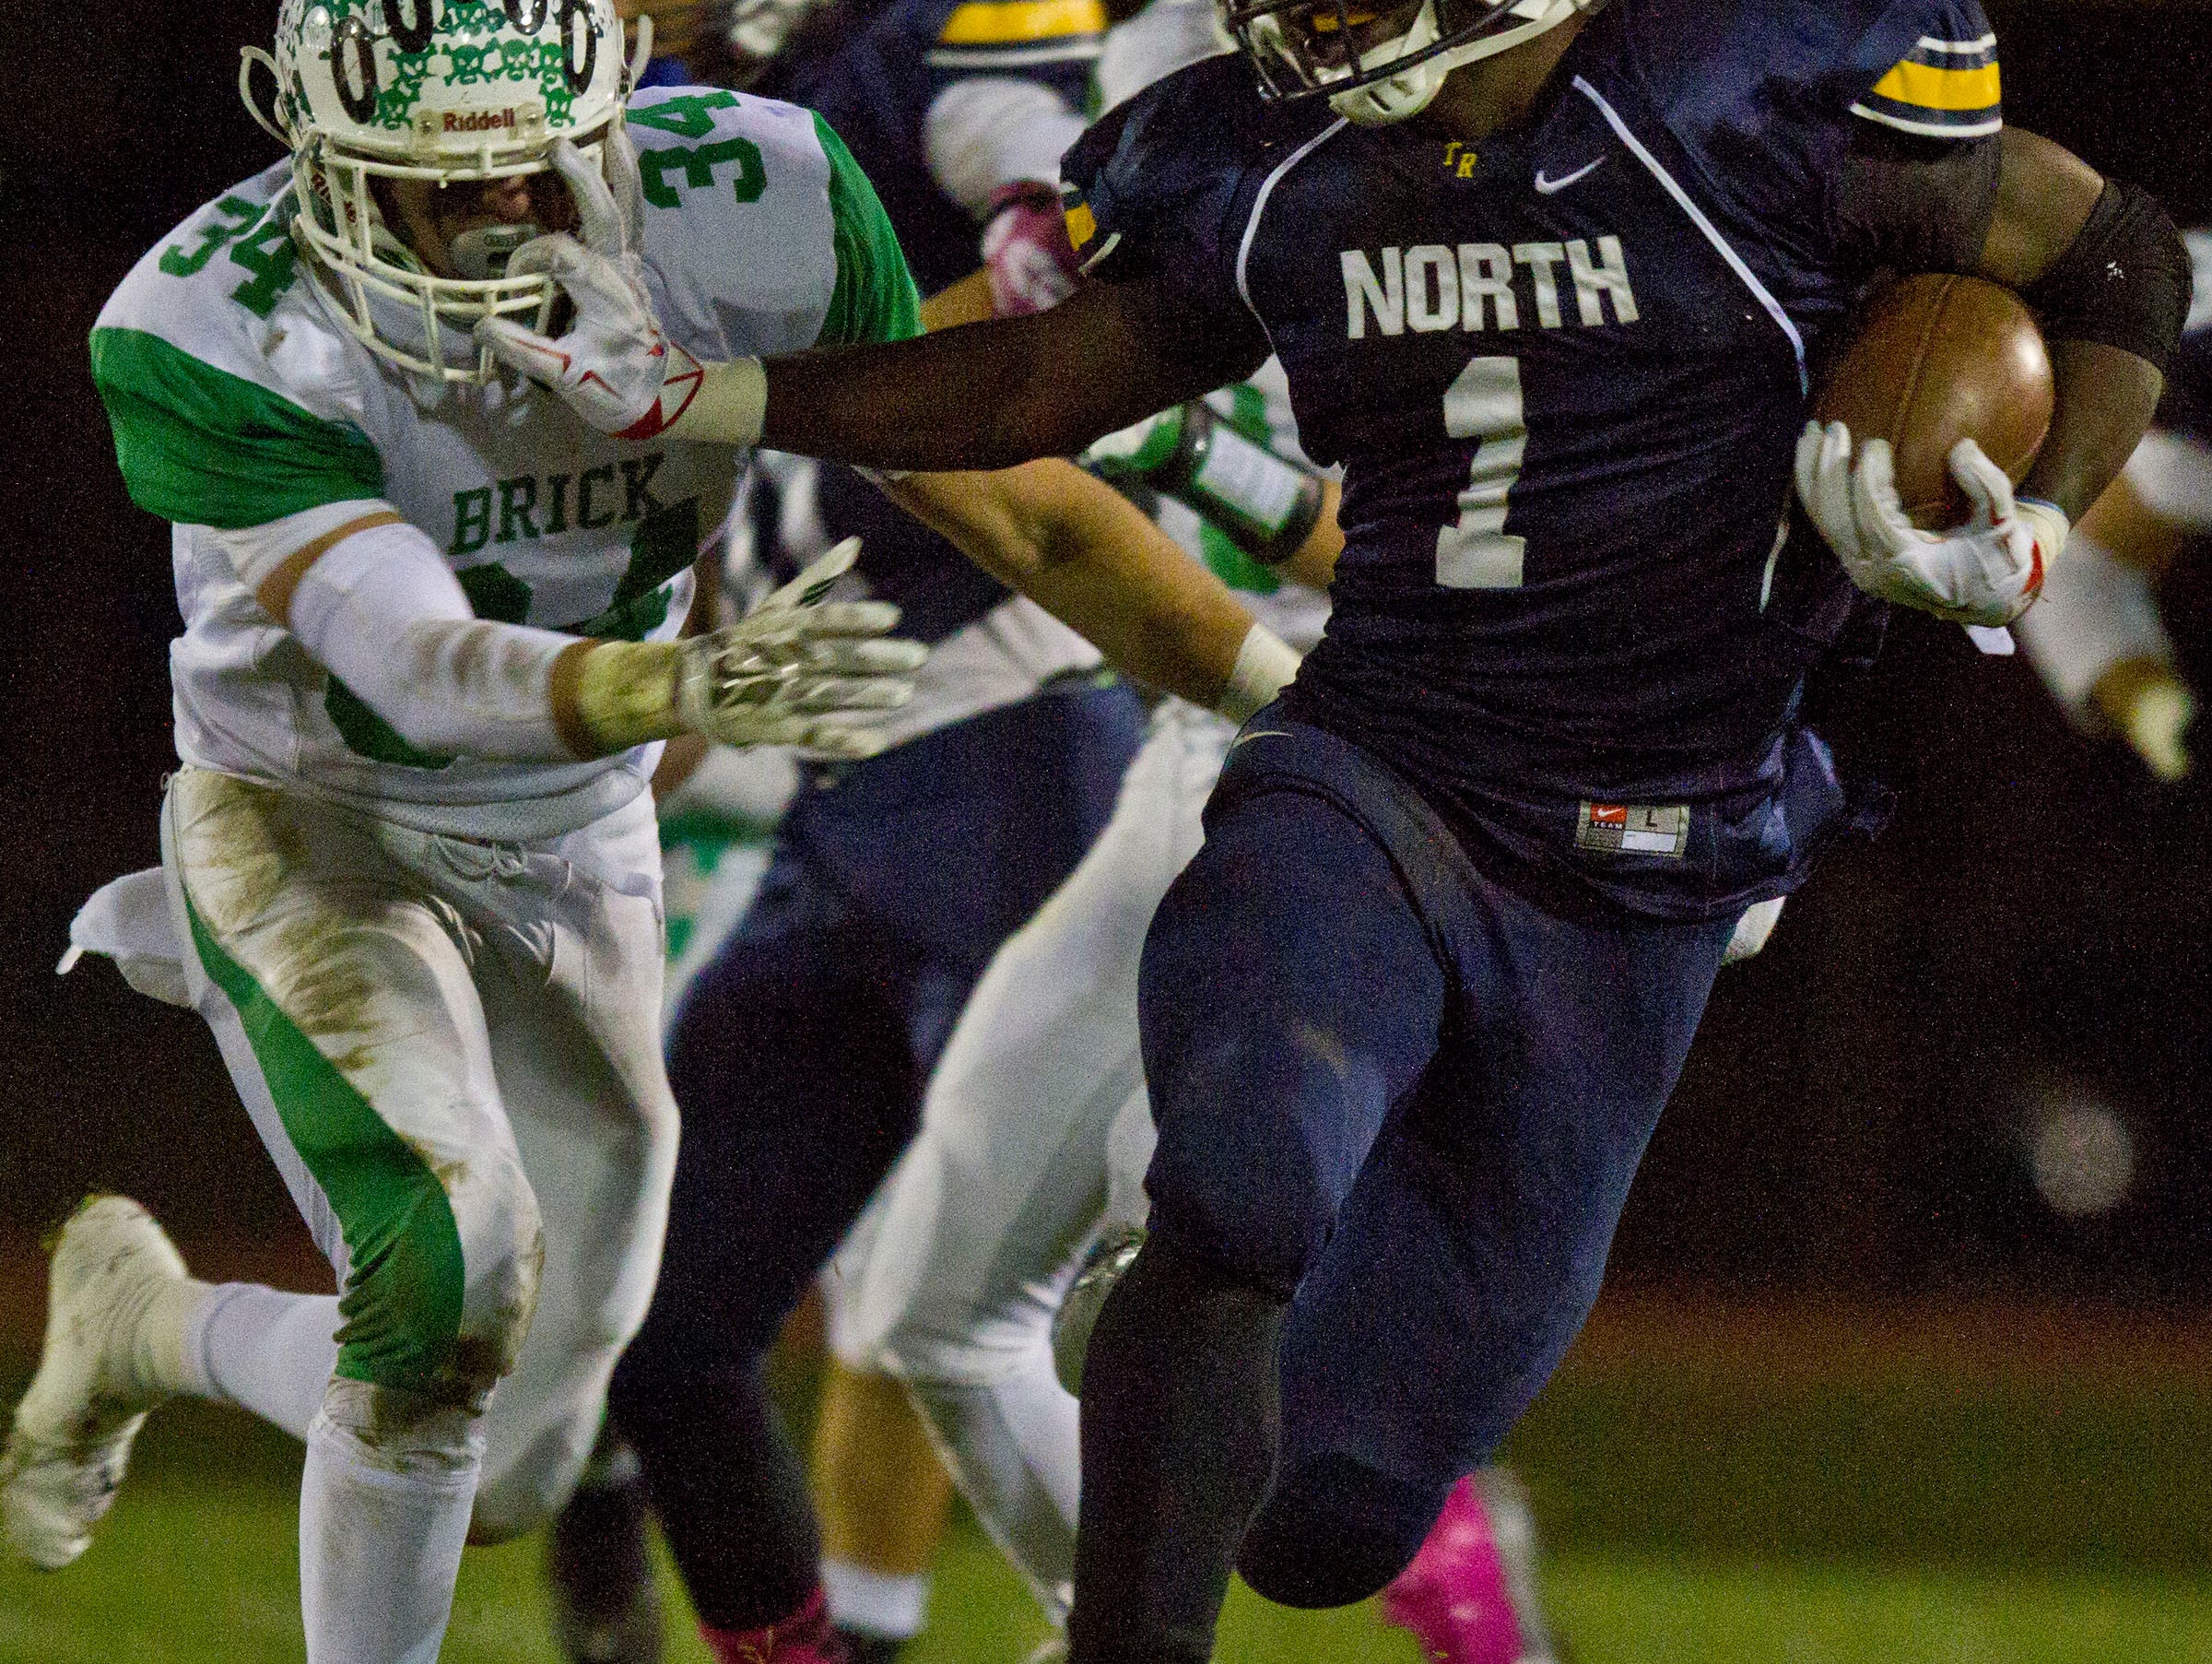 Toms River North's Asante Moorer (1) gains yards on the ground. Toms River North vs Brick football. Brick, NJ Friday, October 30, 2015 @dhoodhood